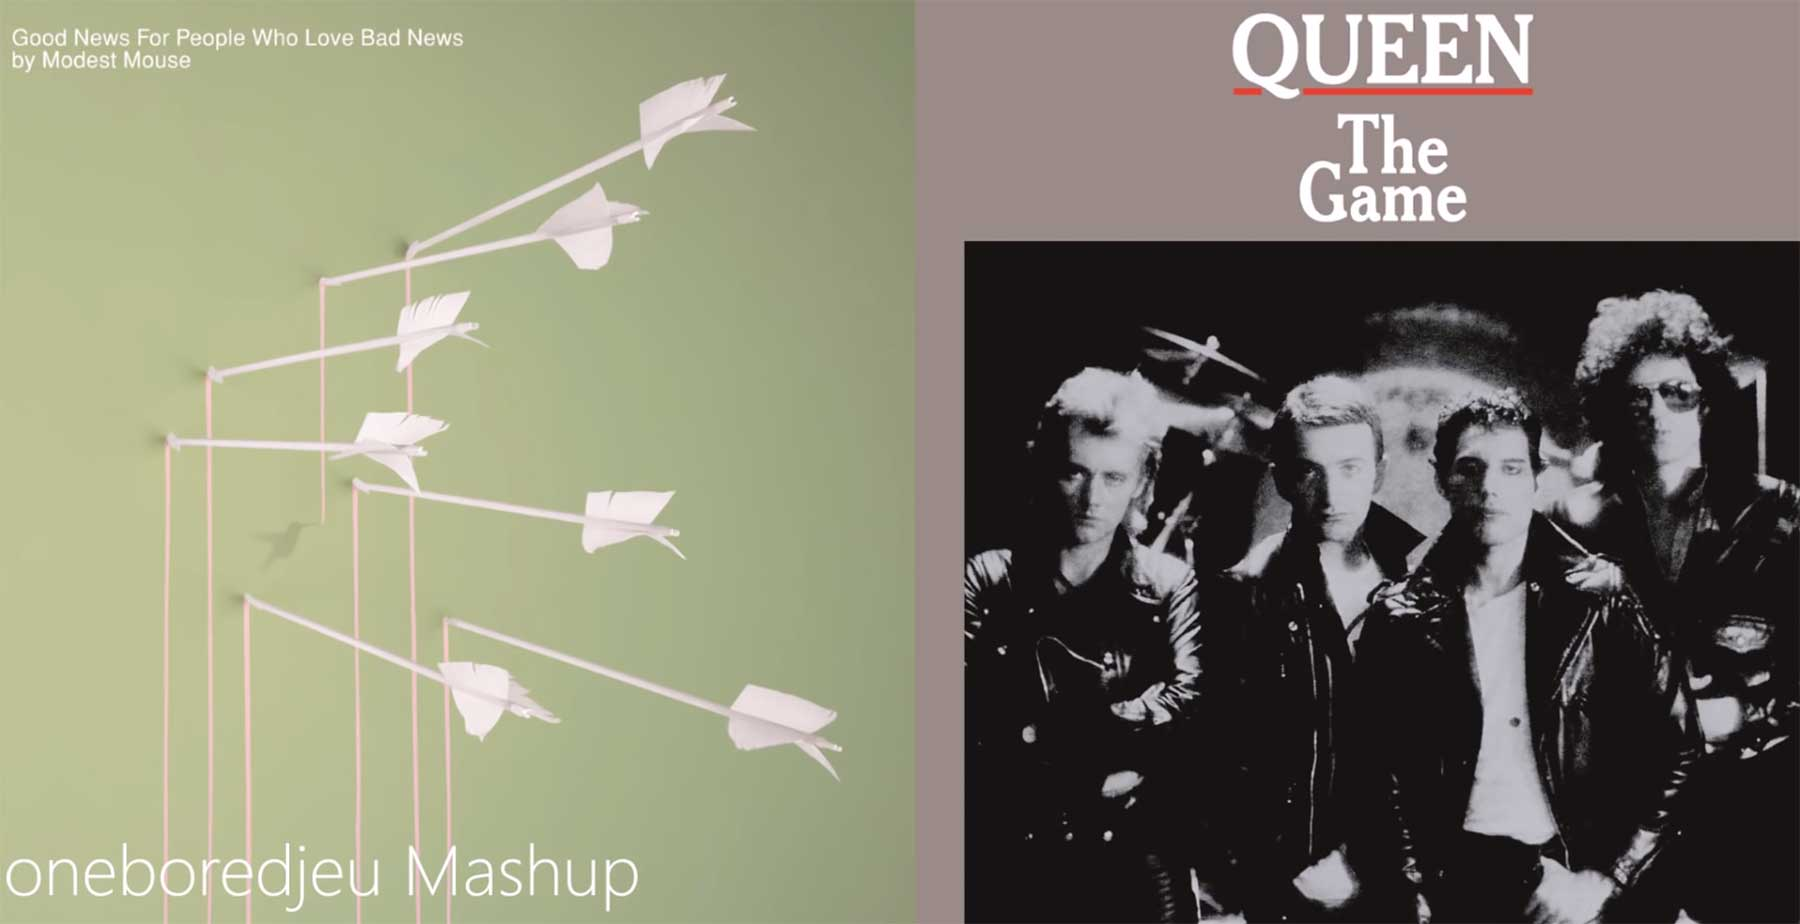 Mashup: Modest Mouse x Queen